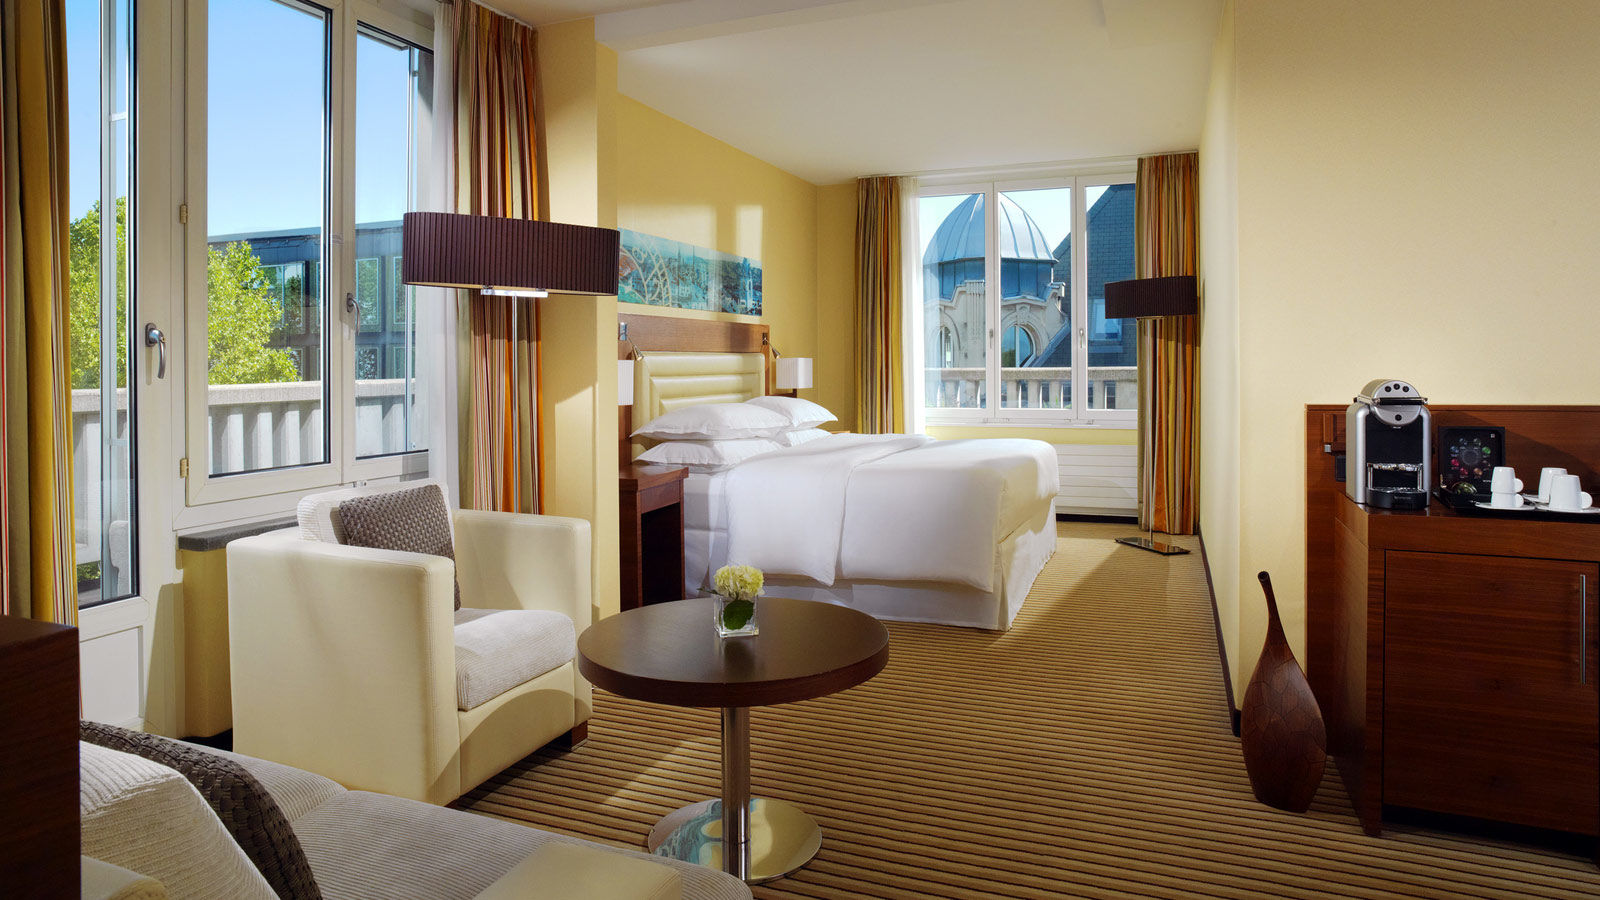 Sheraton-Zrich-Neues-Schloss-Hotel-Junior-Suite